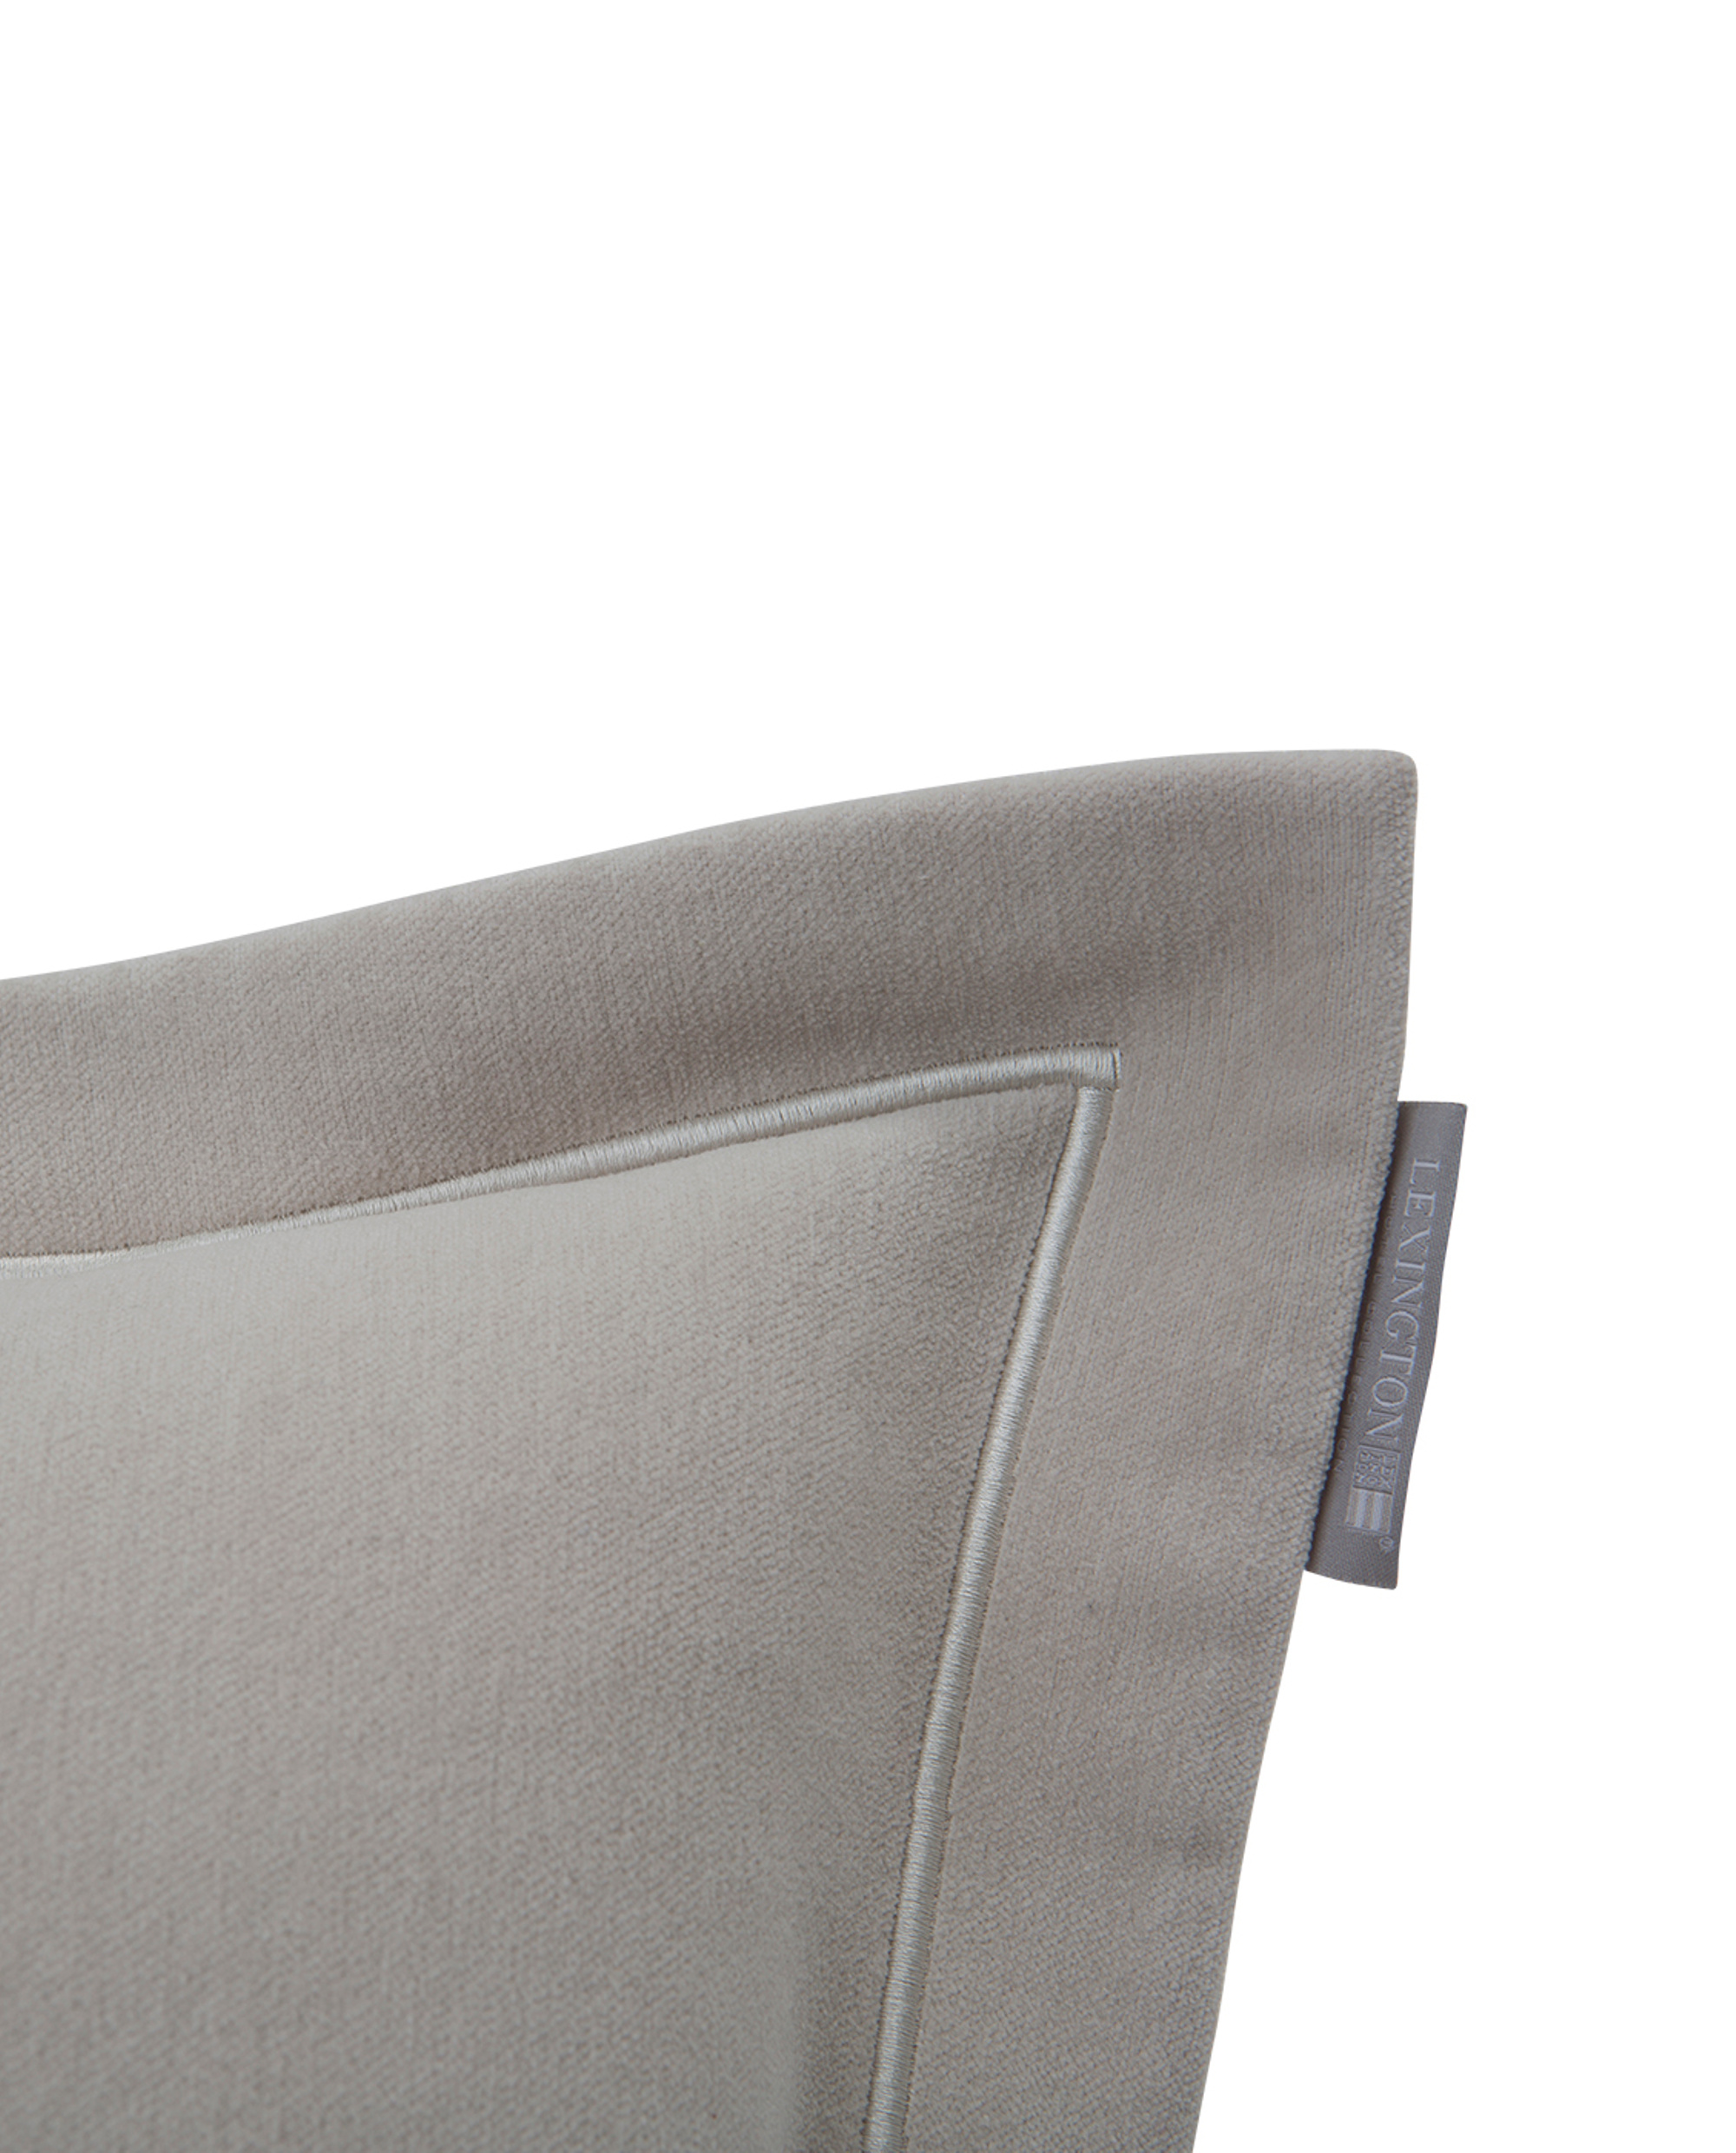 Hotel Velvet Sham with Embroidery, Beige